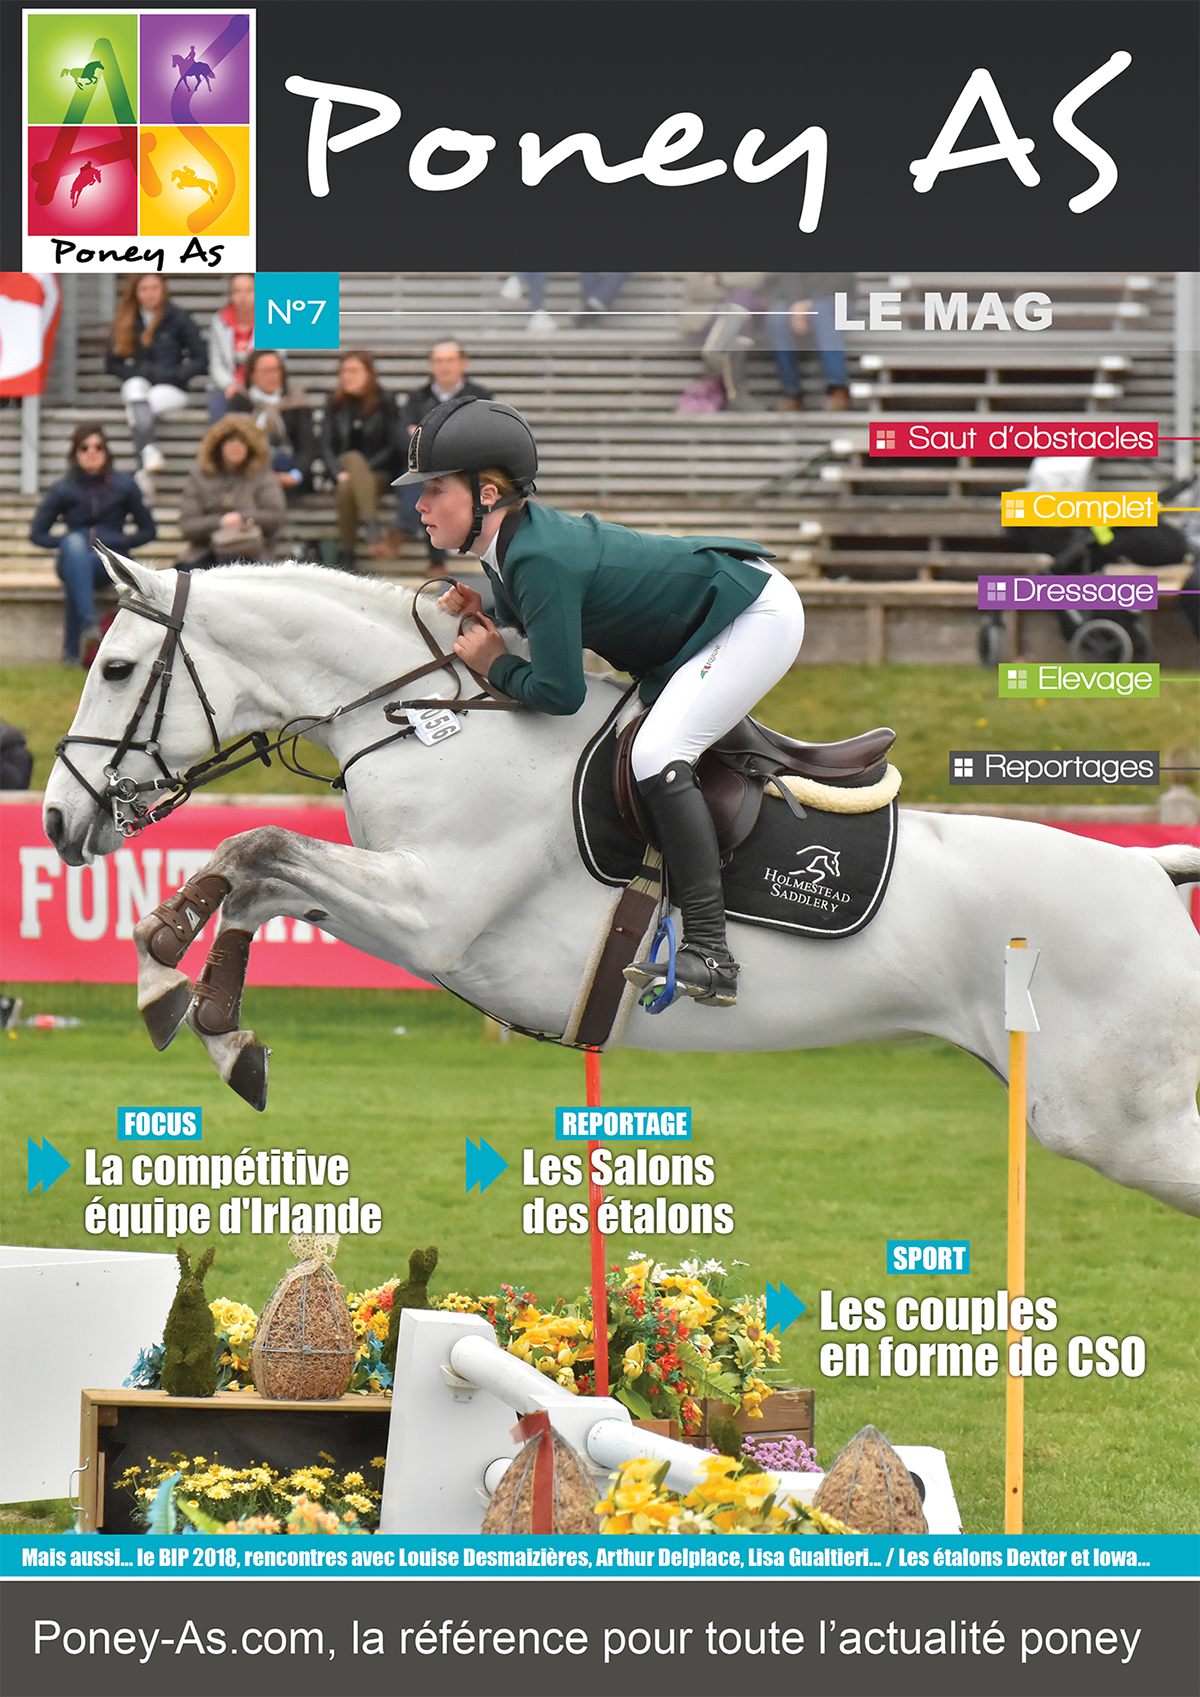 Le Mag Poney As n°7 - édition BIP 2018